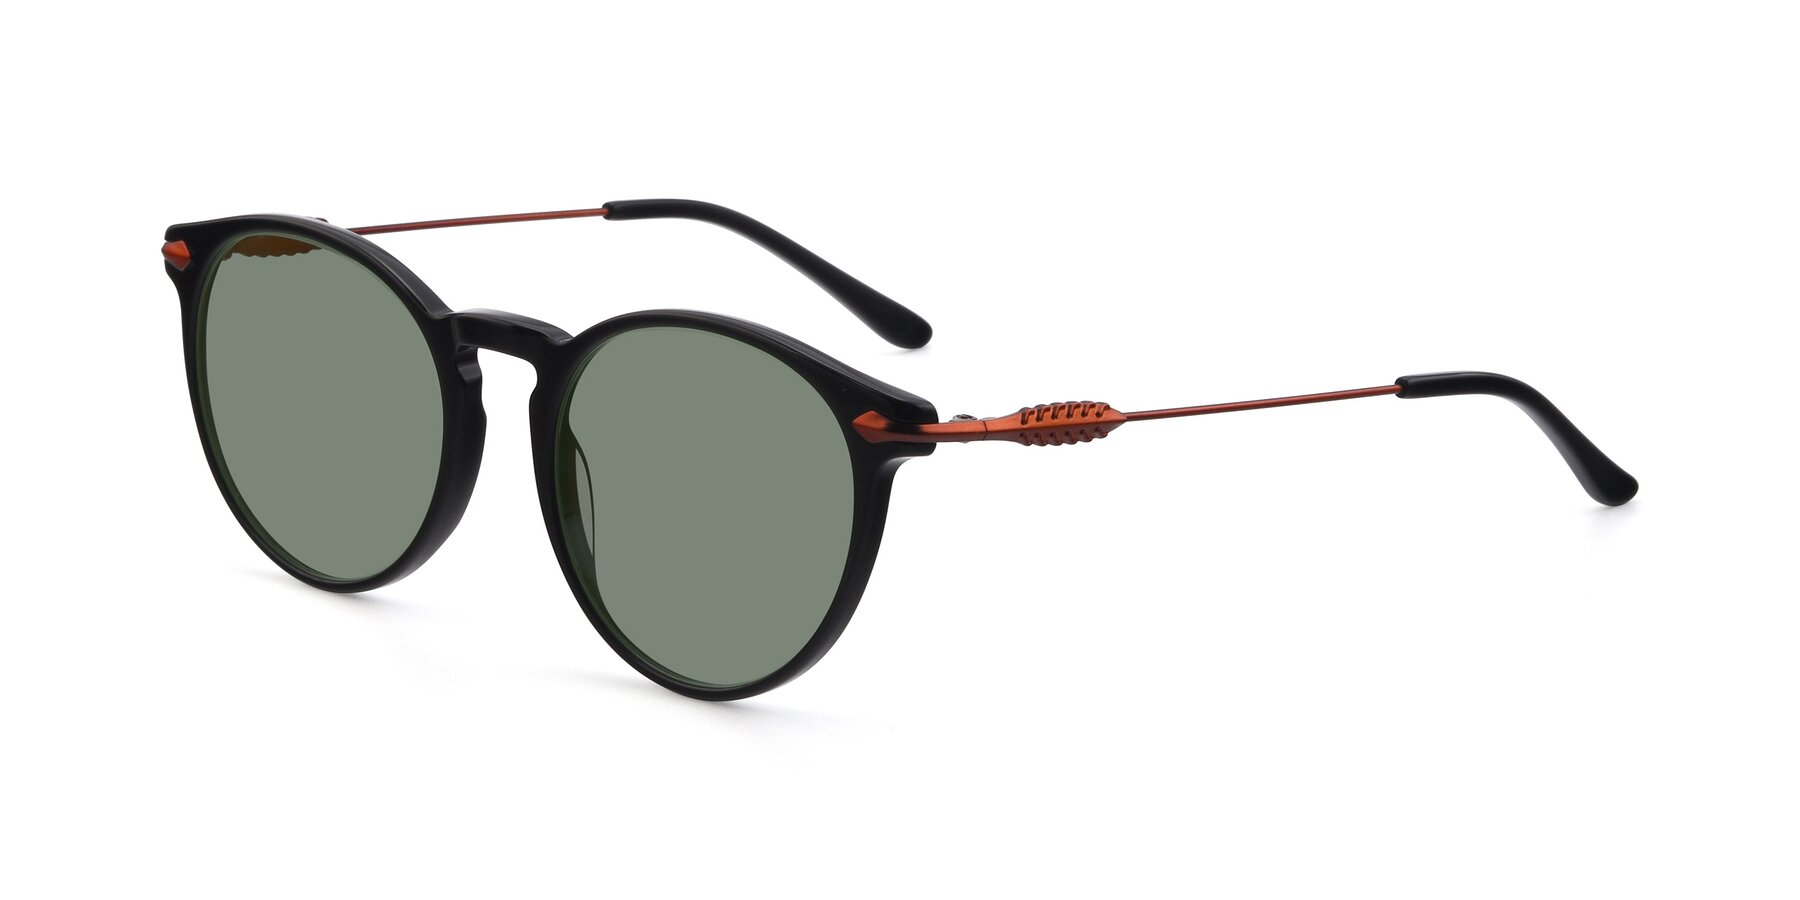 Angle of 17660 in Black with Medium Green Tinted Lenses